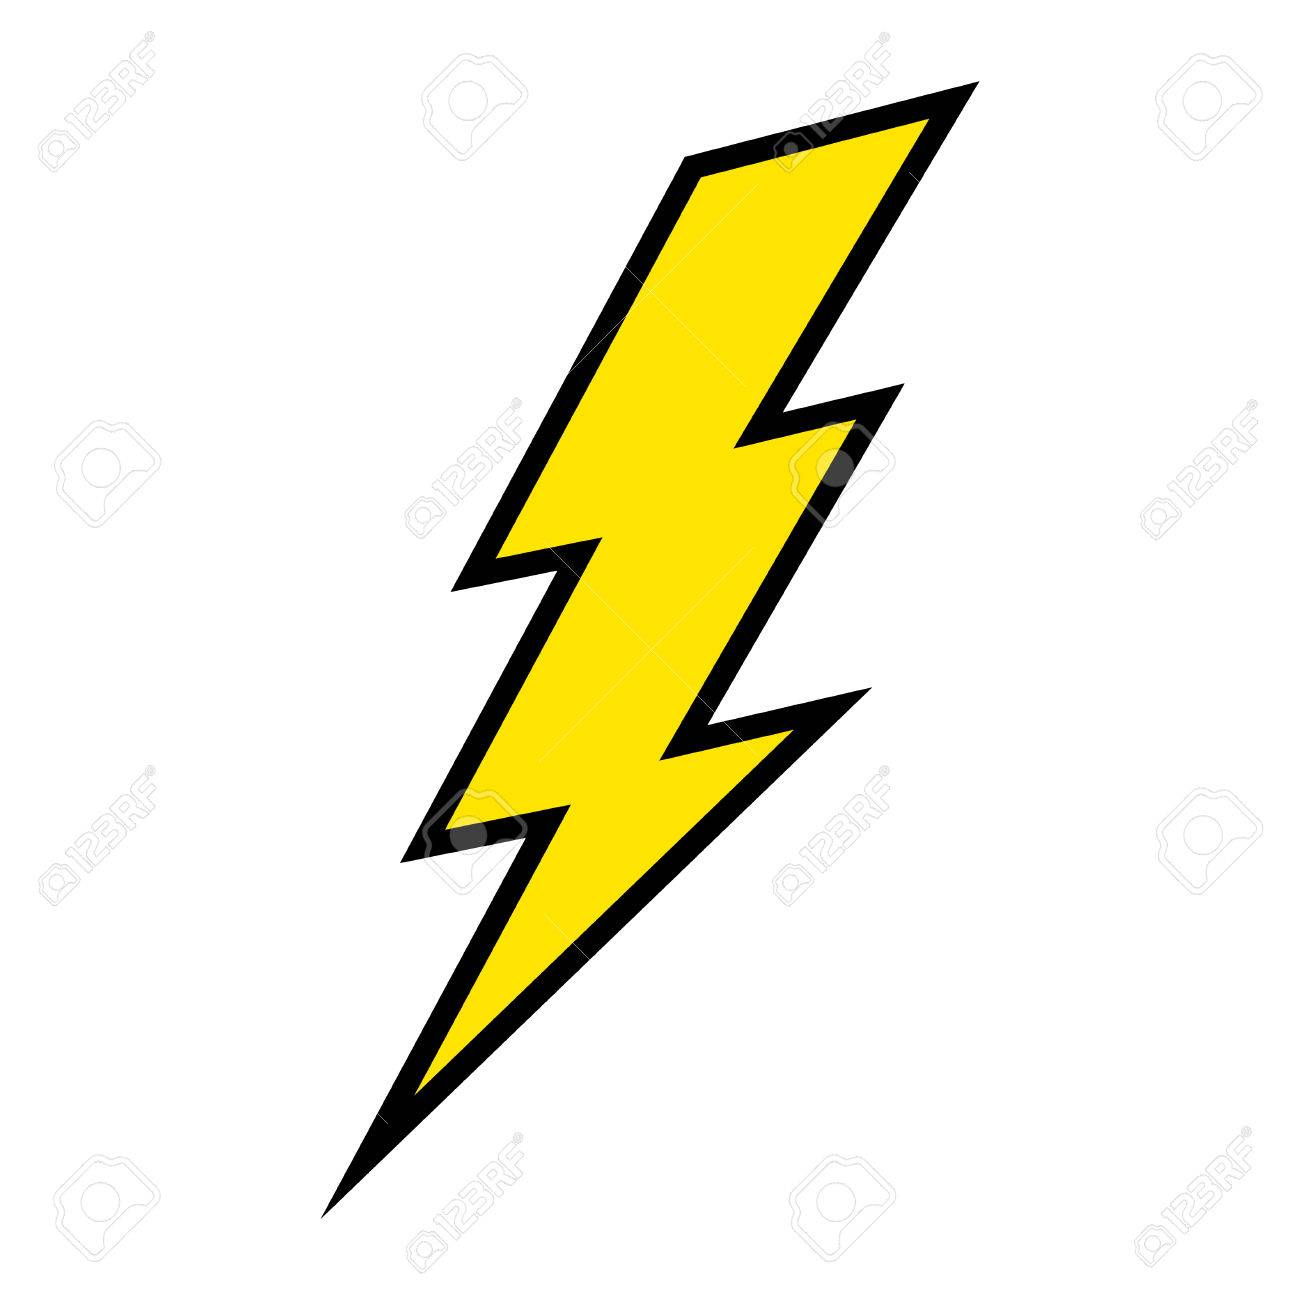 Lightning Bolt Vector Icon Royalty Free Cliparts, Vectors, And ... for Vector Lighting Bolt  76uhy